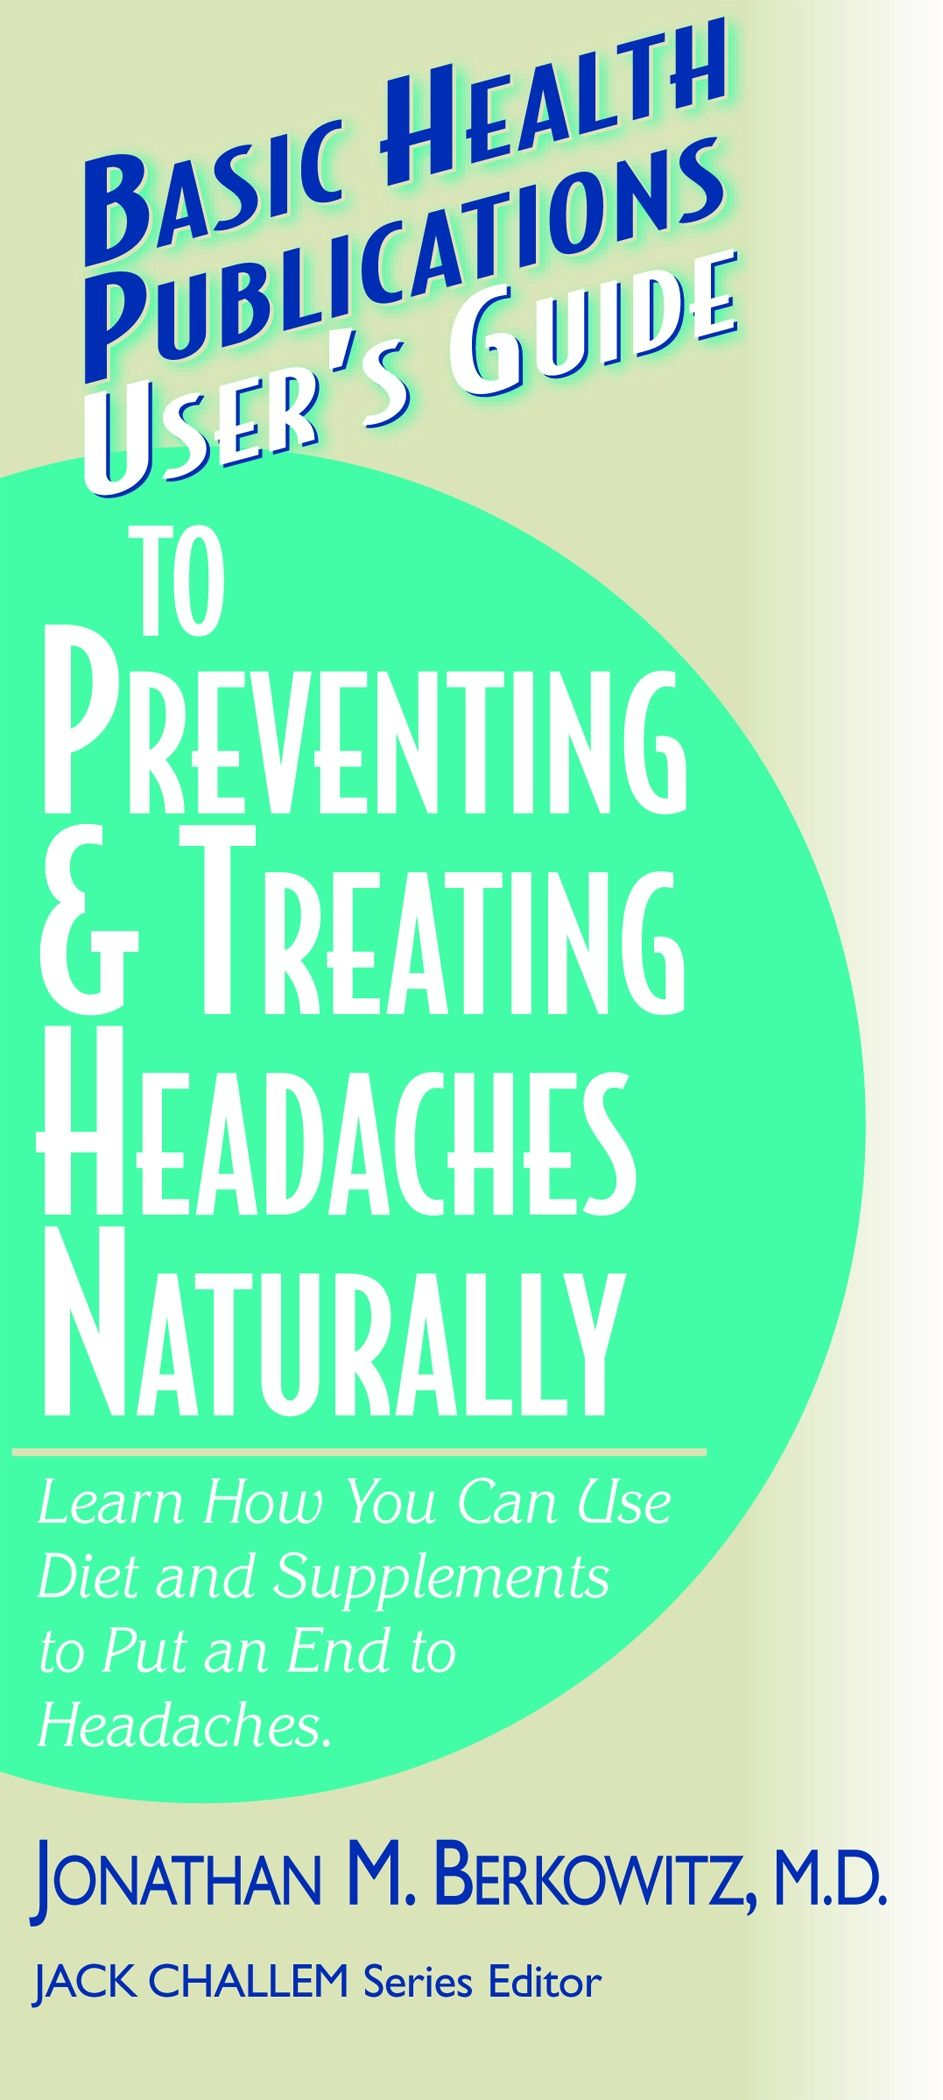 User's Guide to Preventing & Treating Headaches Naturally: